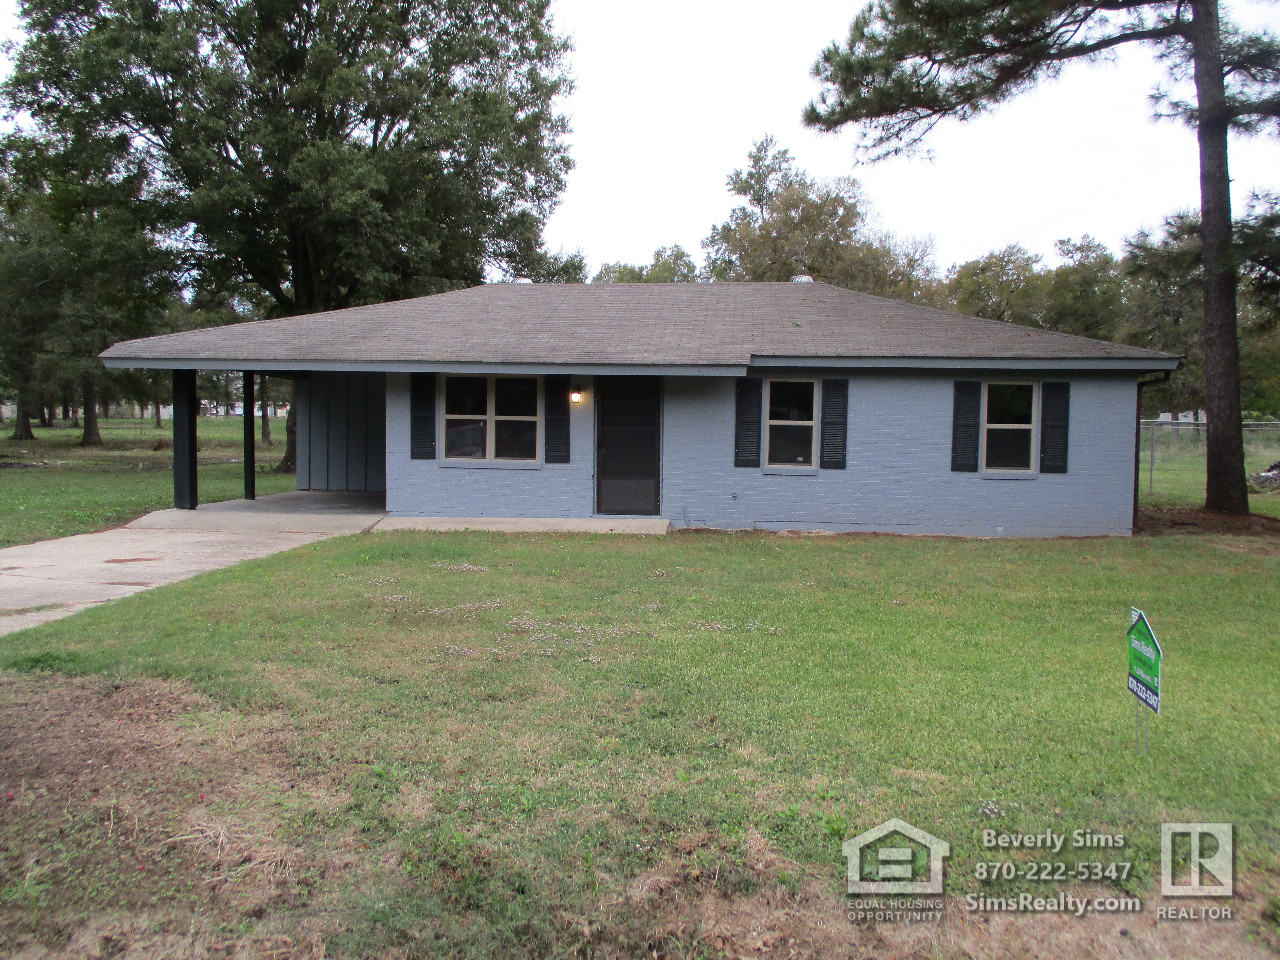 603 N. 5th St., McGehee, AR 71654